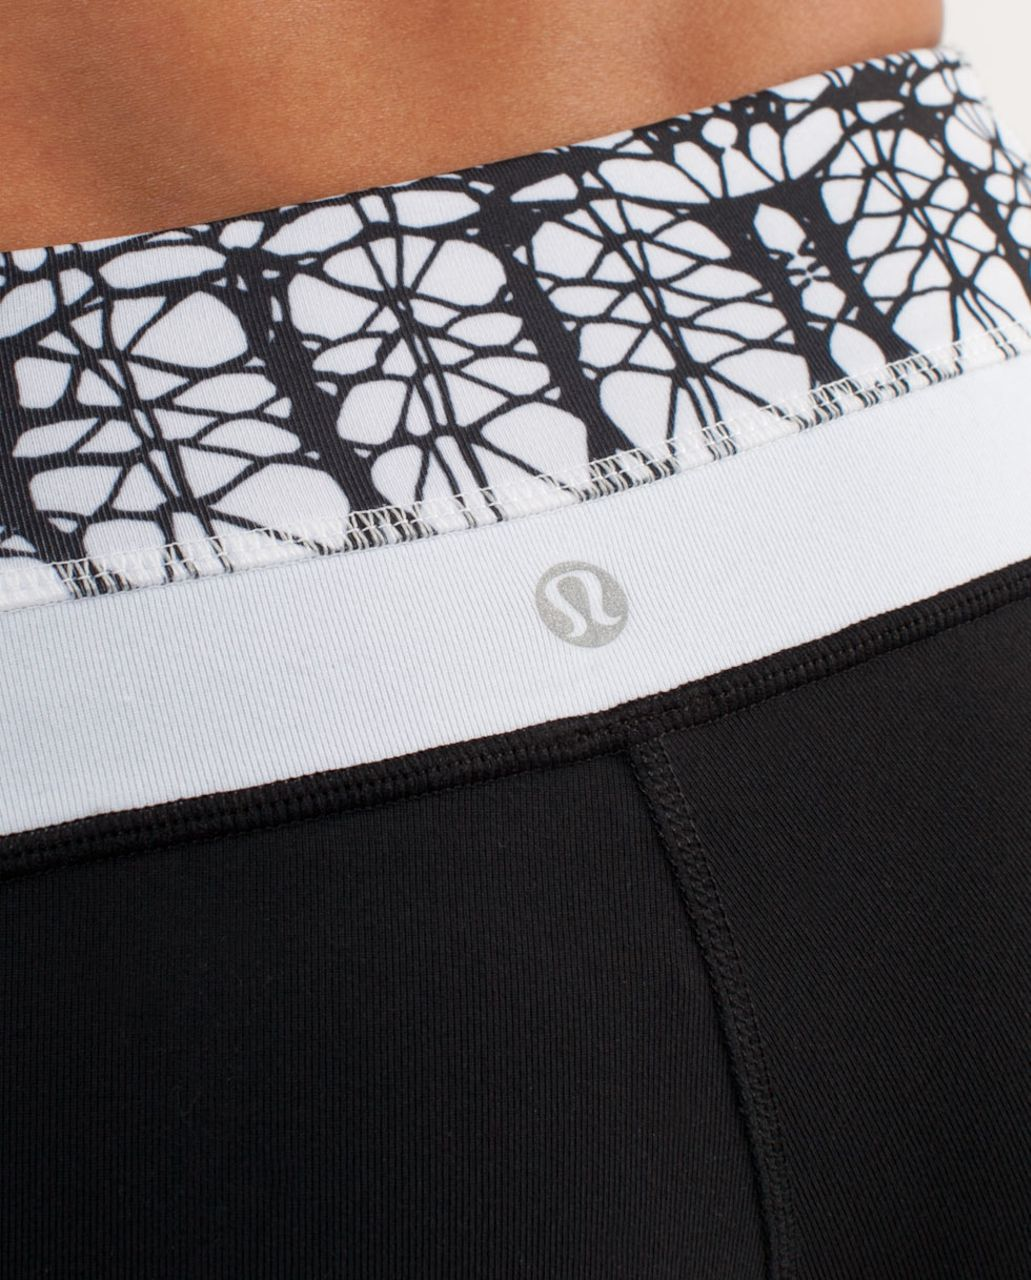 Lululemon Groove Pant (Regular) - Black /  White Black Glacier Lace /  White Black Glacier Lace